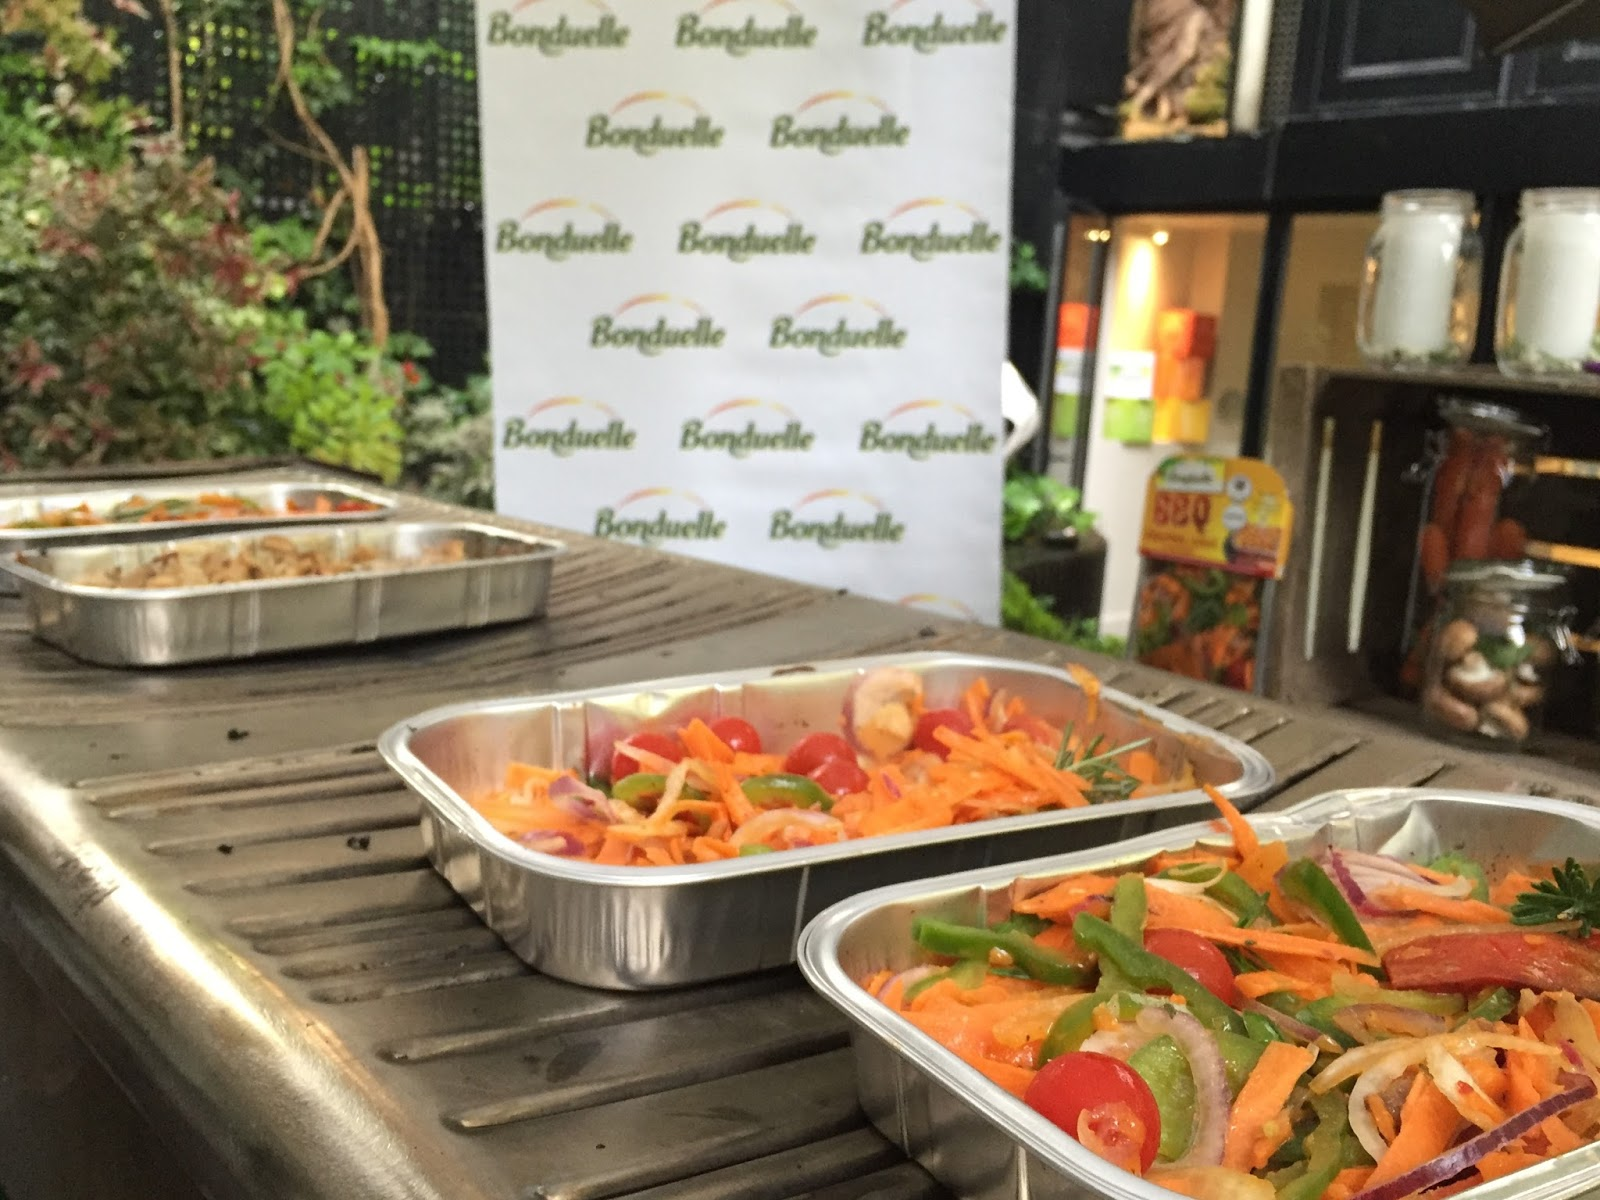 green barbecue plancha parenthese bonduelle evenement event blog food healthy vert bio légume bbq paris trocadero christian dior maison terrasse champignon manger mieux bien